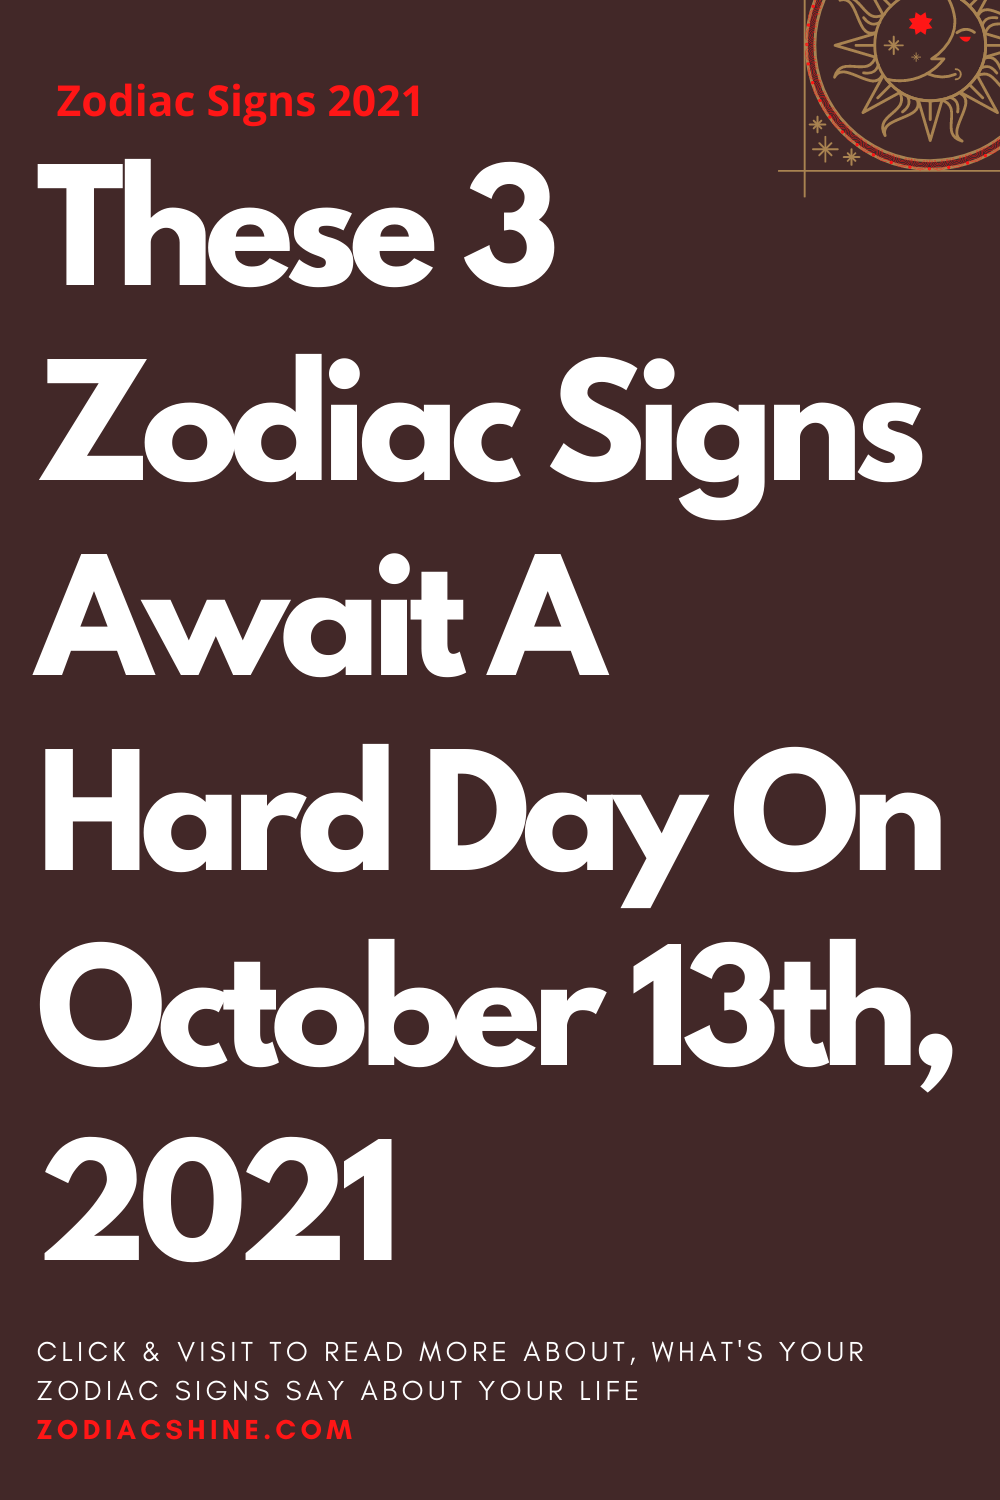 These 3 Zodiac Signs Await A Hard Day On October 13th 2021